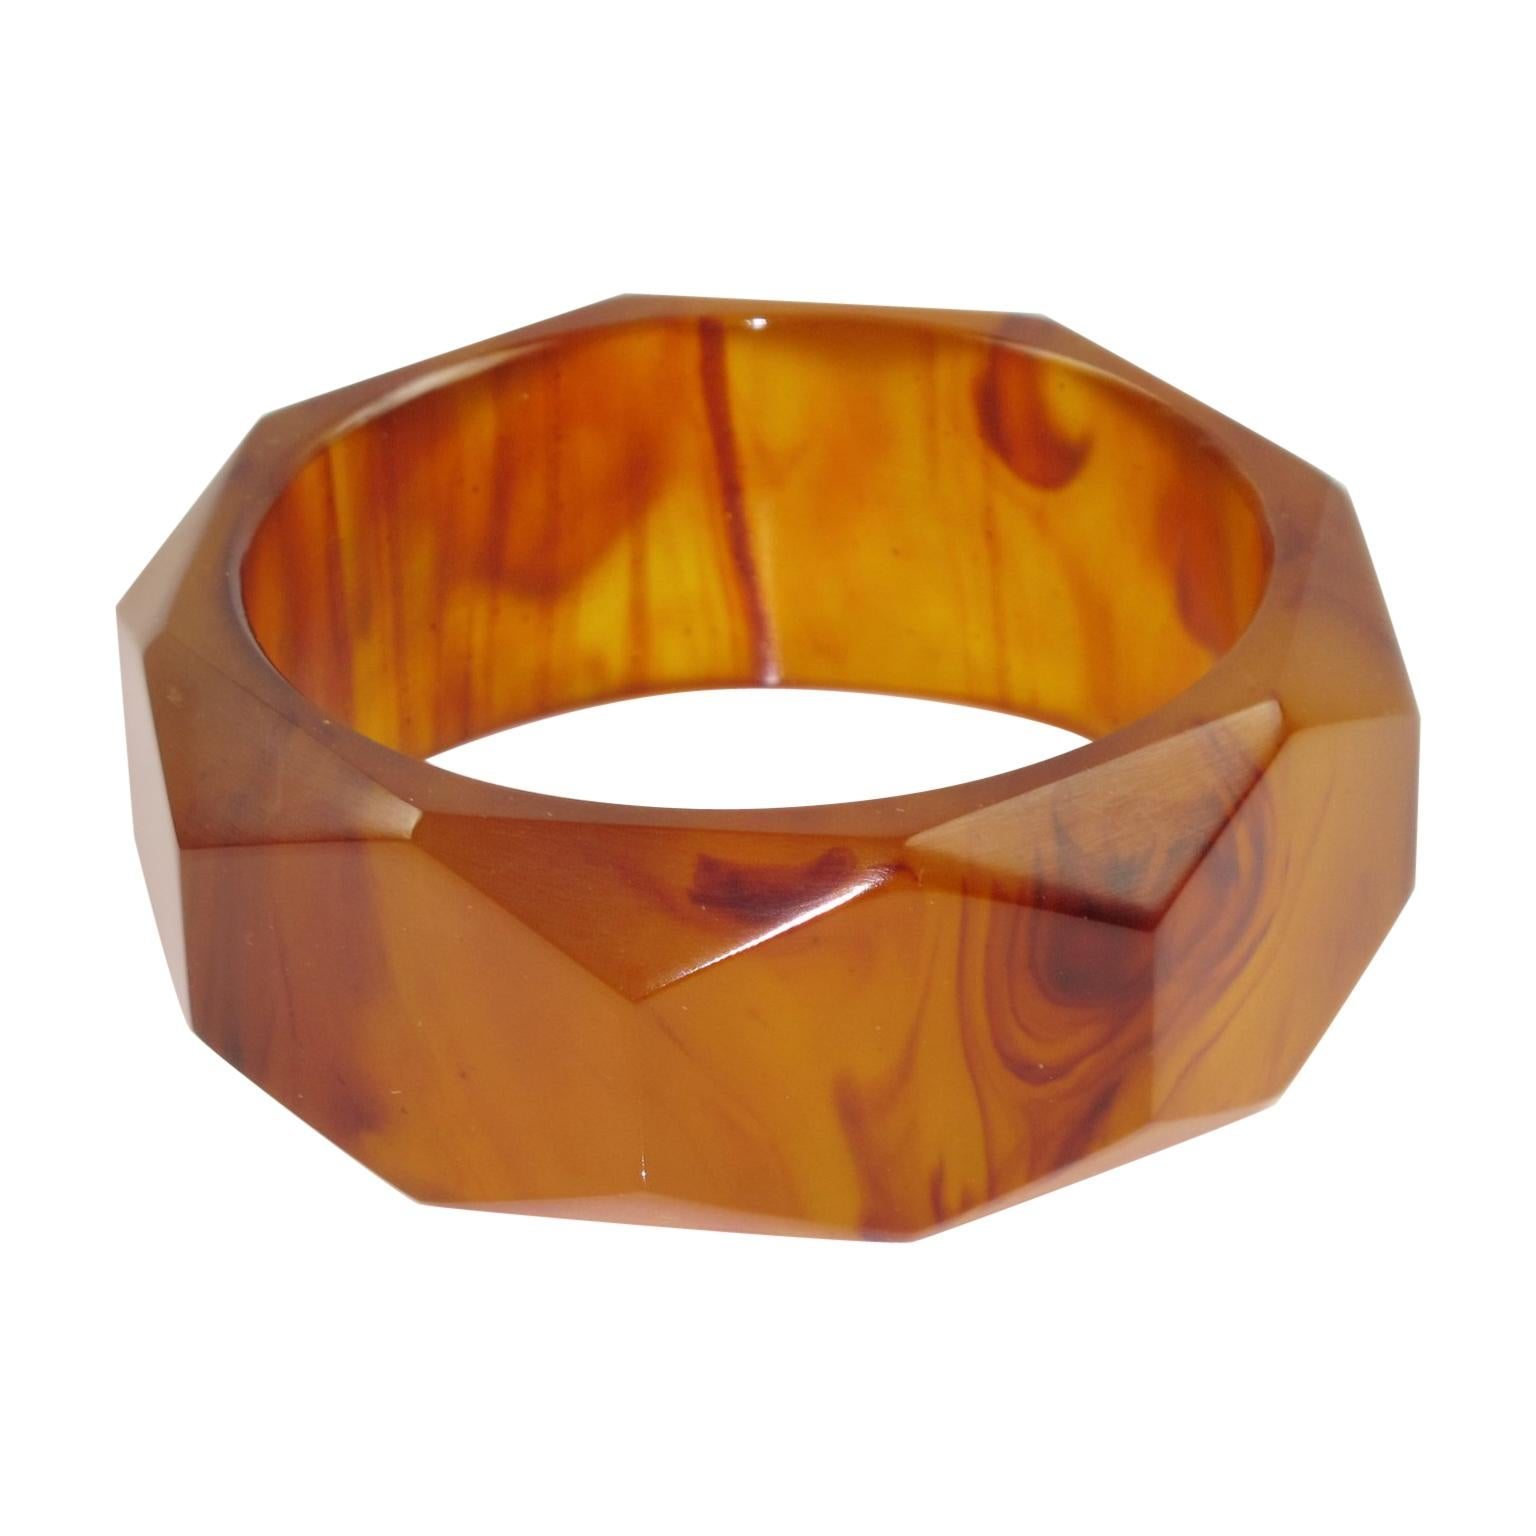 Vintage, Retro, Mid-century Antiques Sensible Great Vintage Orange Amber Plastic Art Deco Napkin Holder